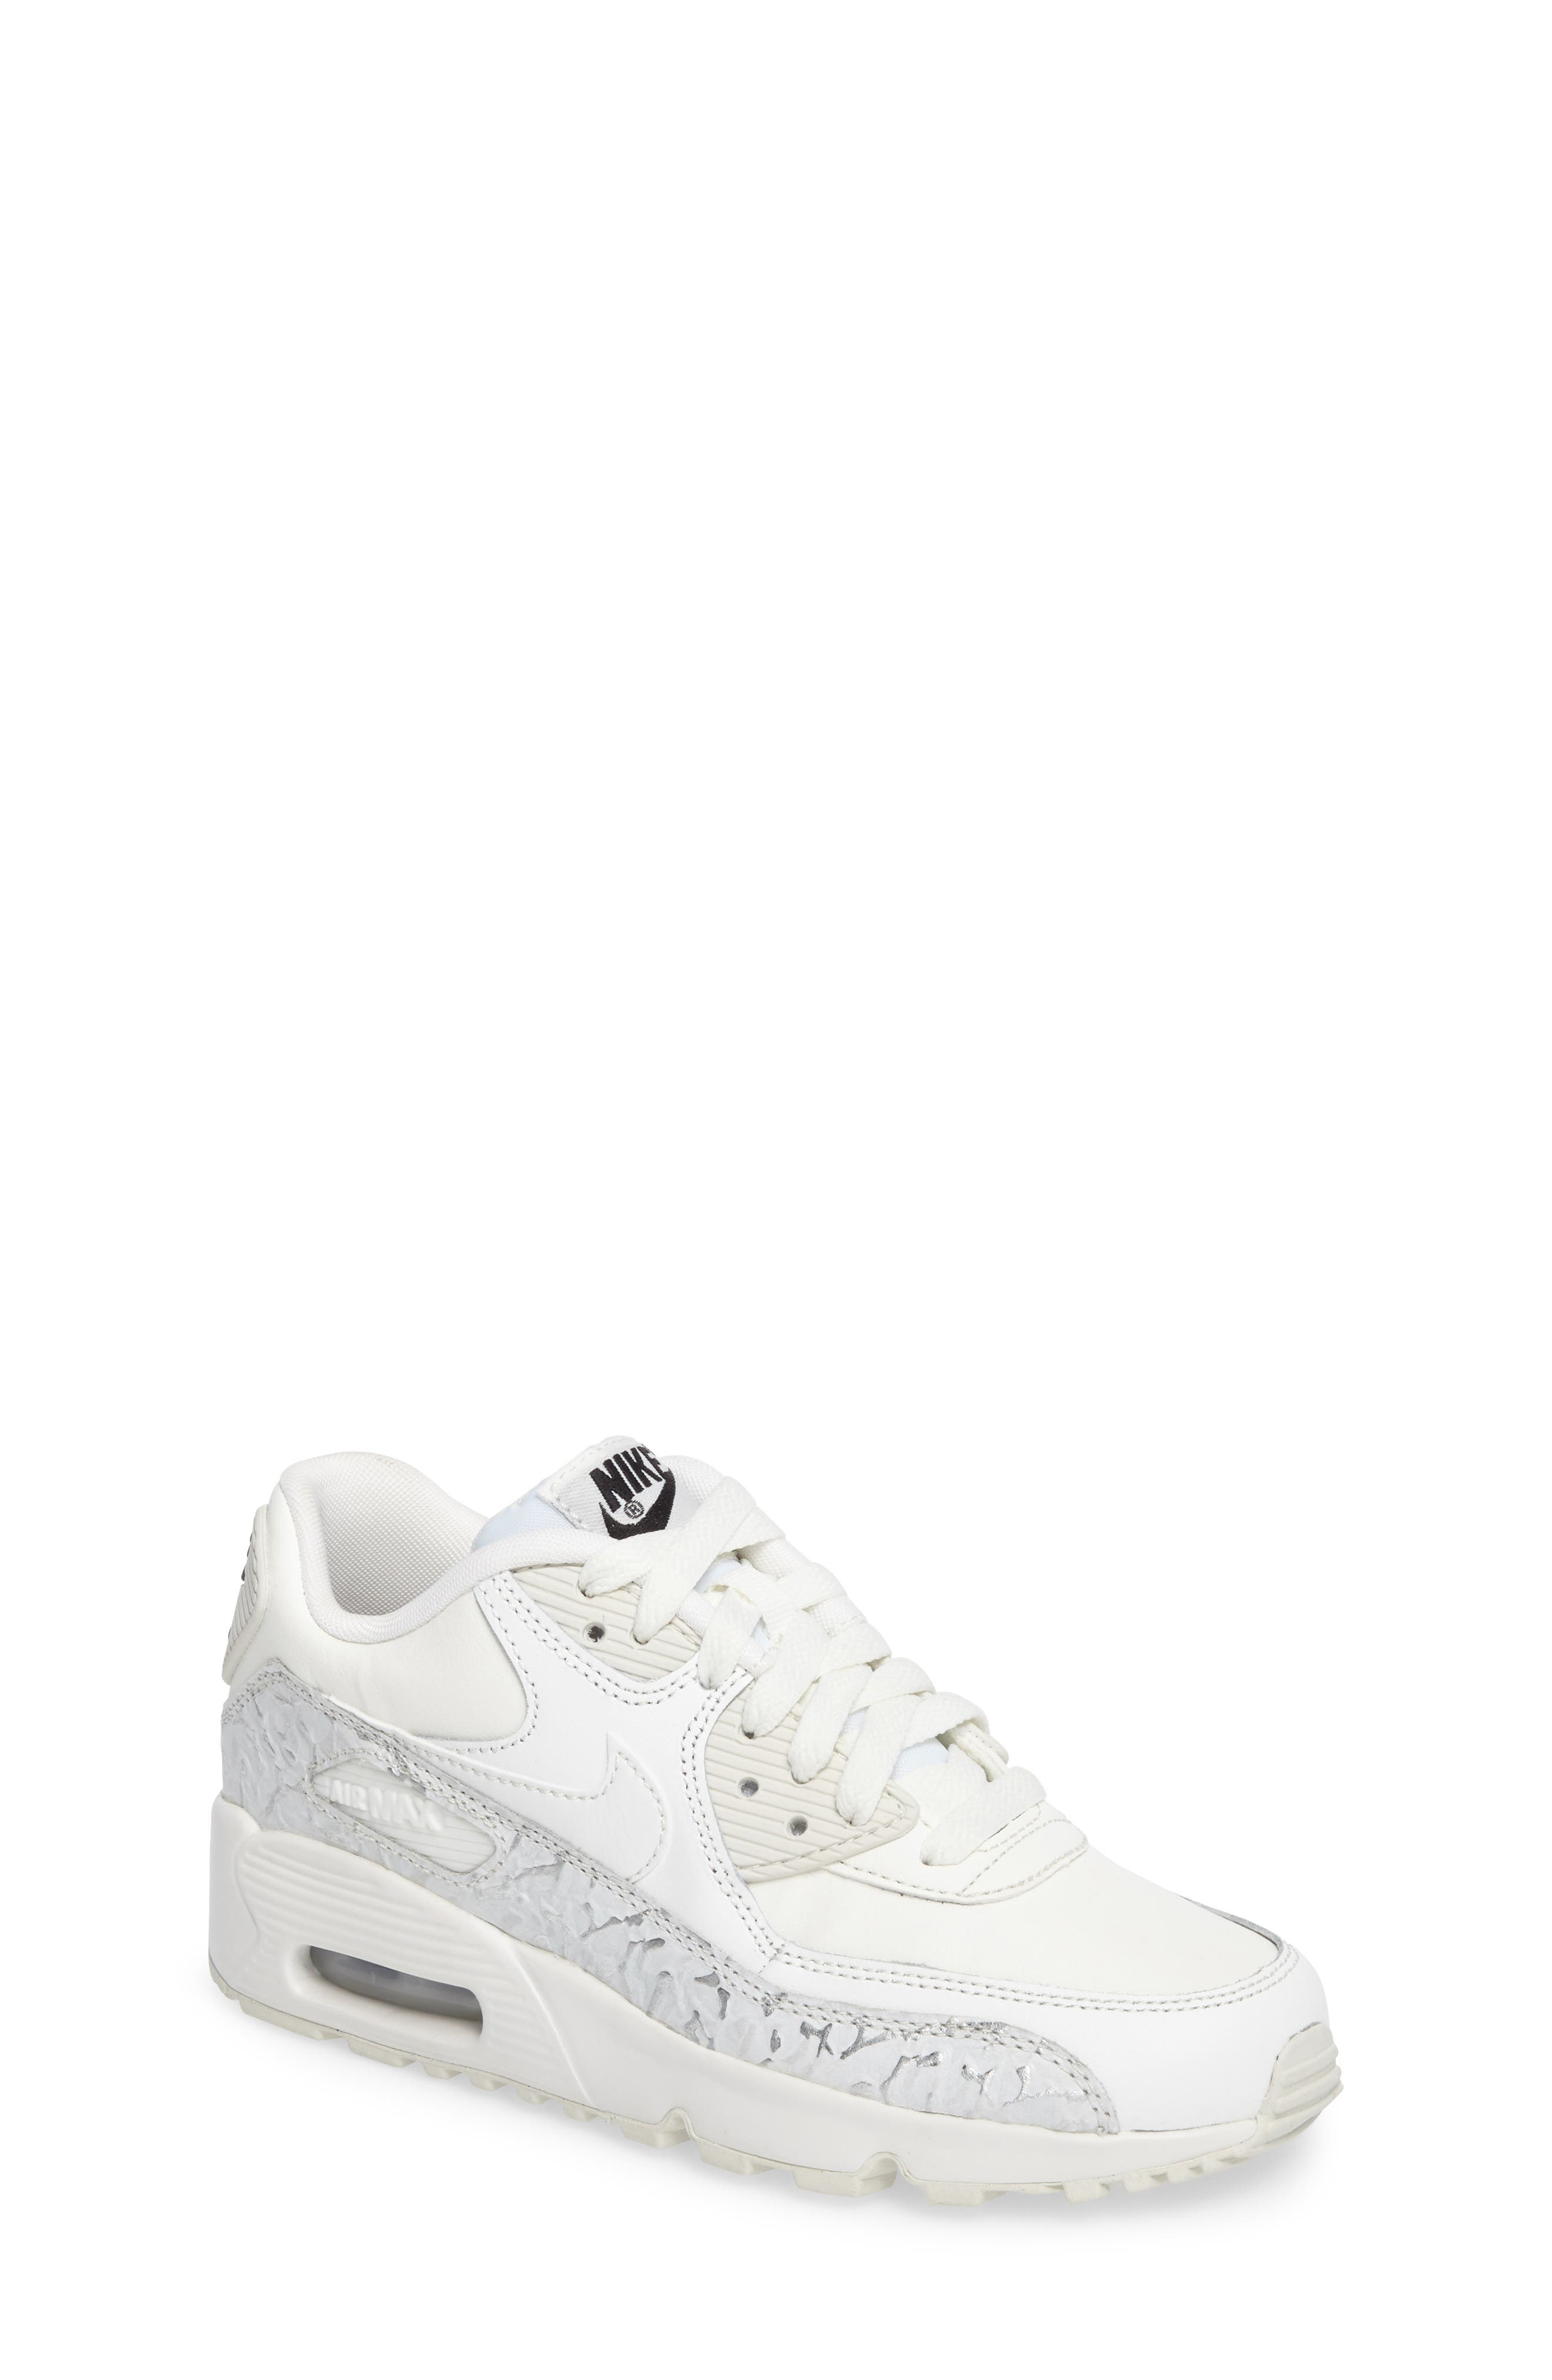 Air Max 90 Leather Sneaker,                         Main,                         color, Summit White/ Black